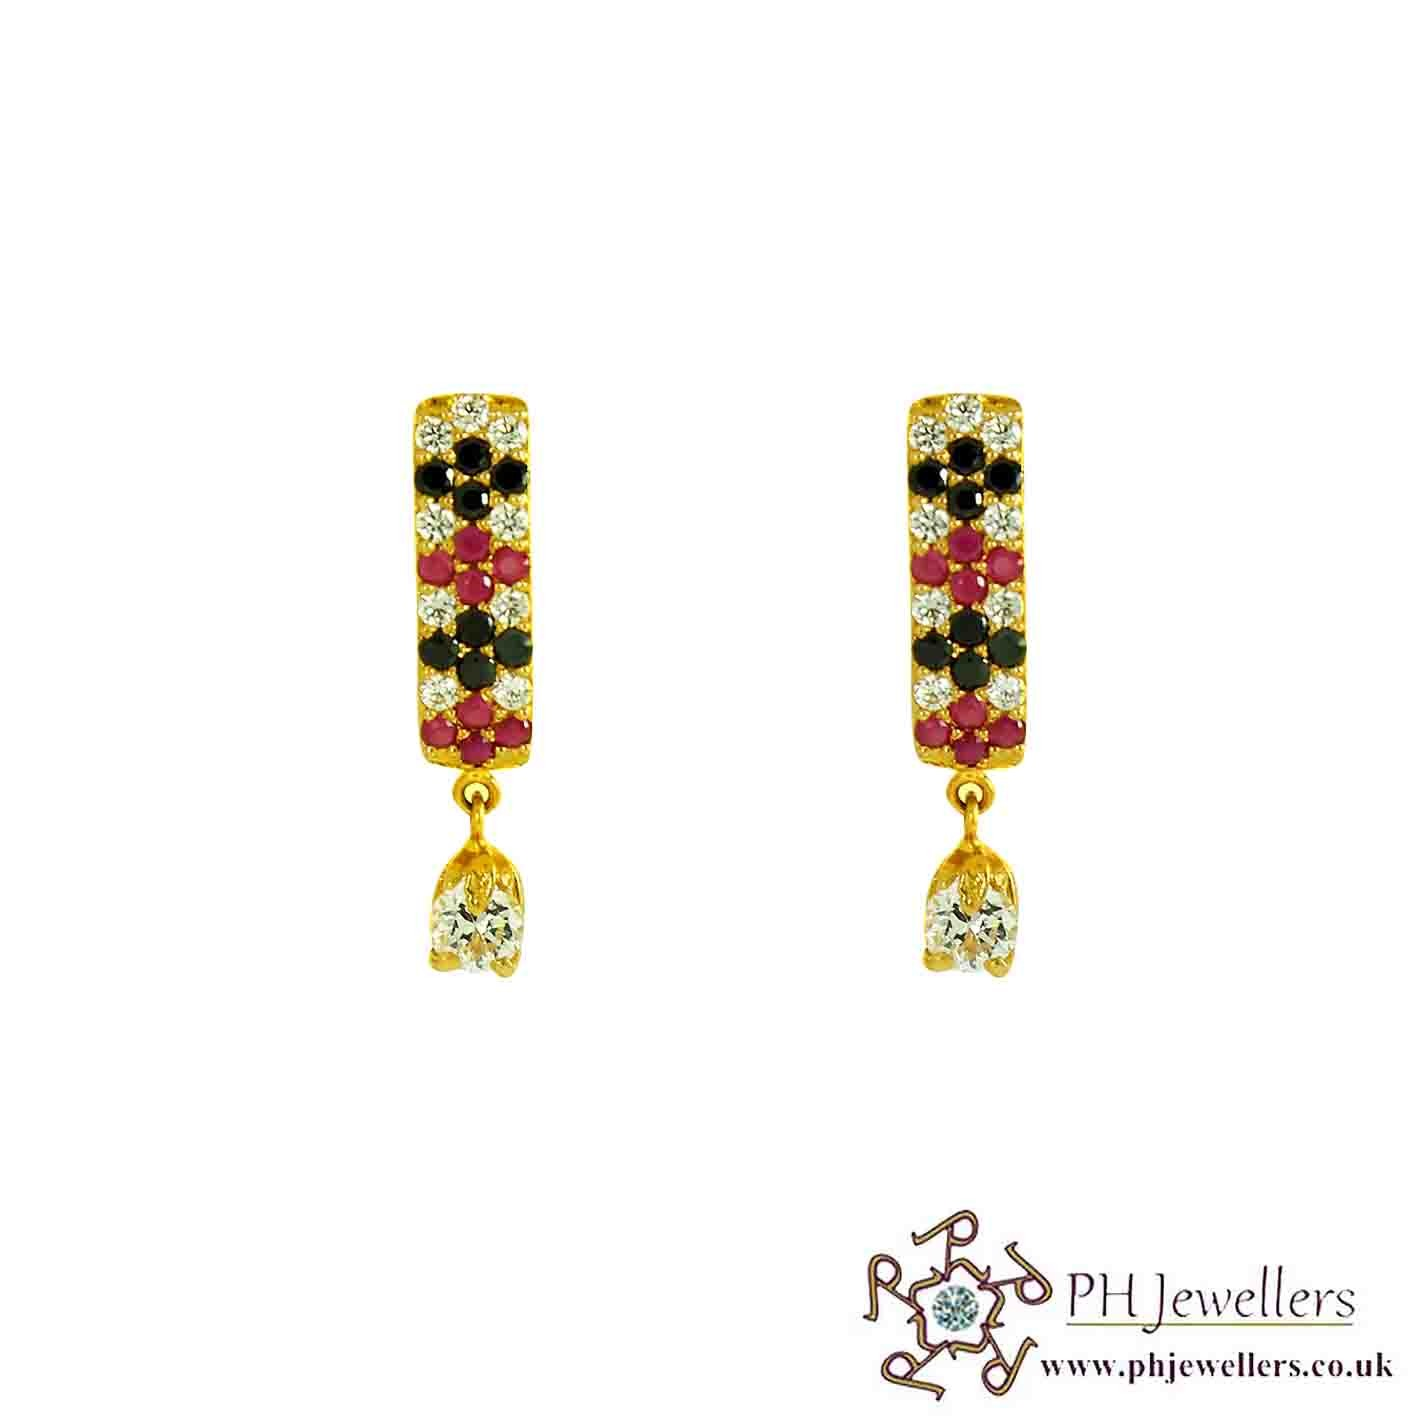 22ct 916 Hallmark Yellow Gold Clip On-Dangle Ruby/Black Earring CZ CE30